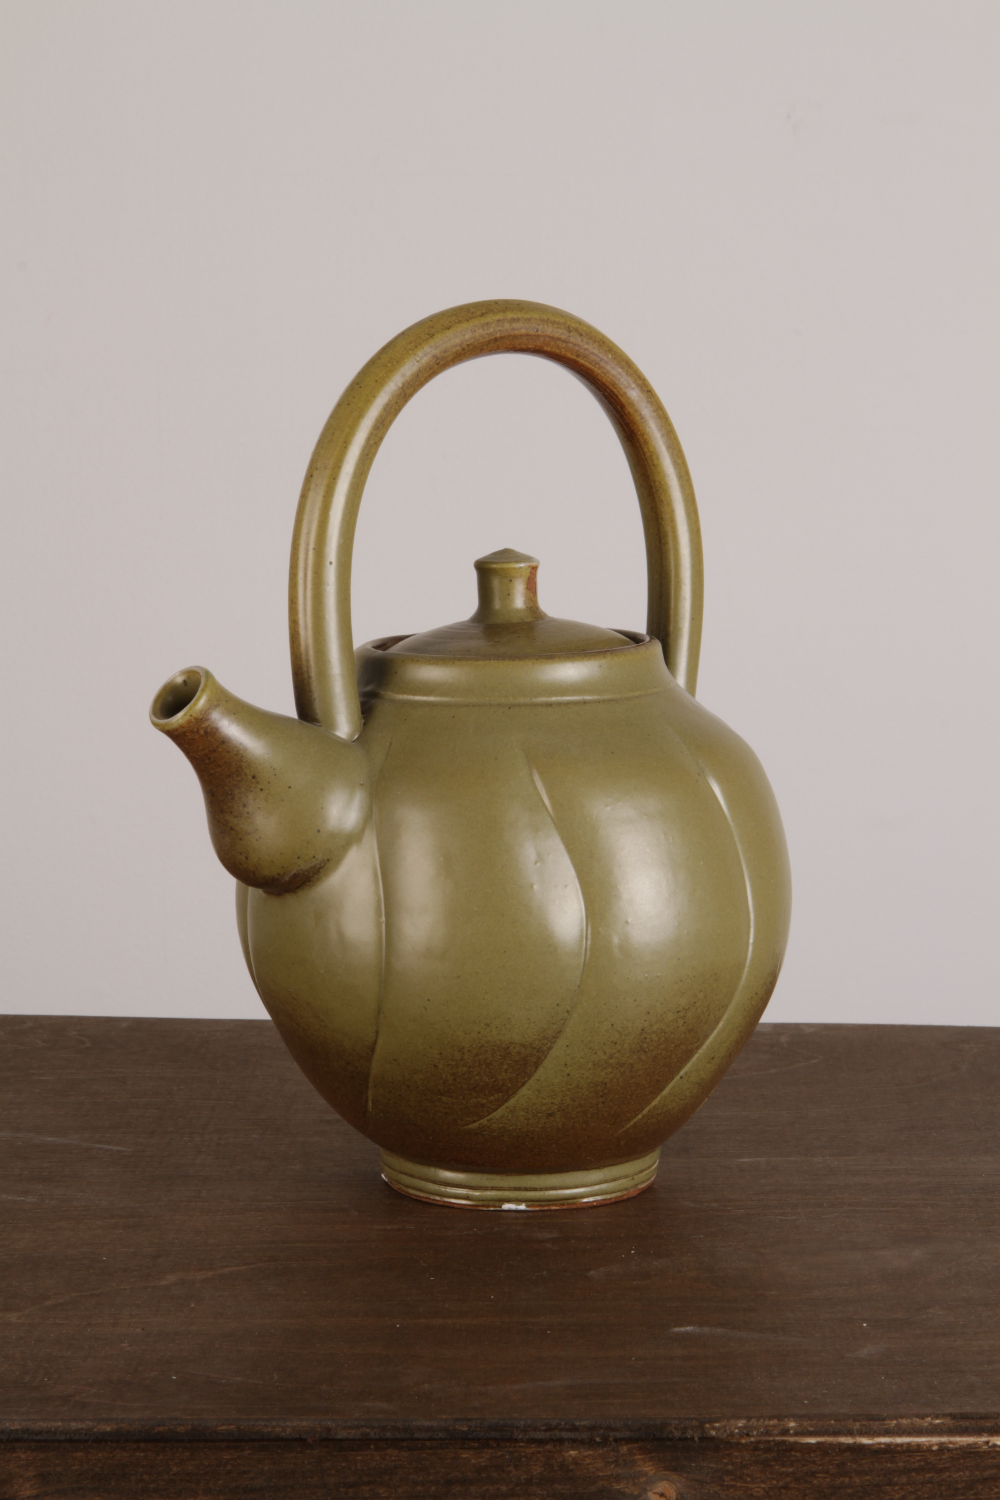 Green (altered) Teapot